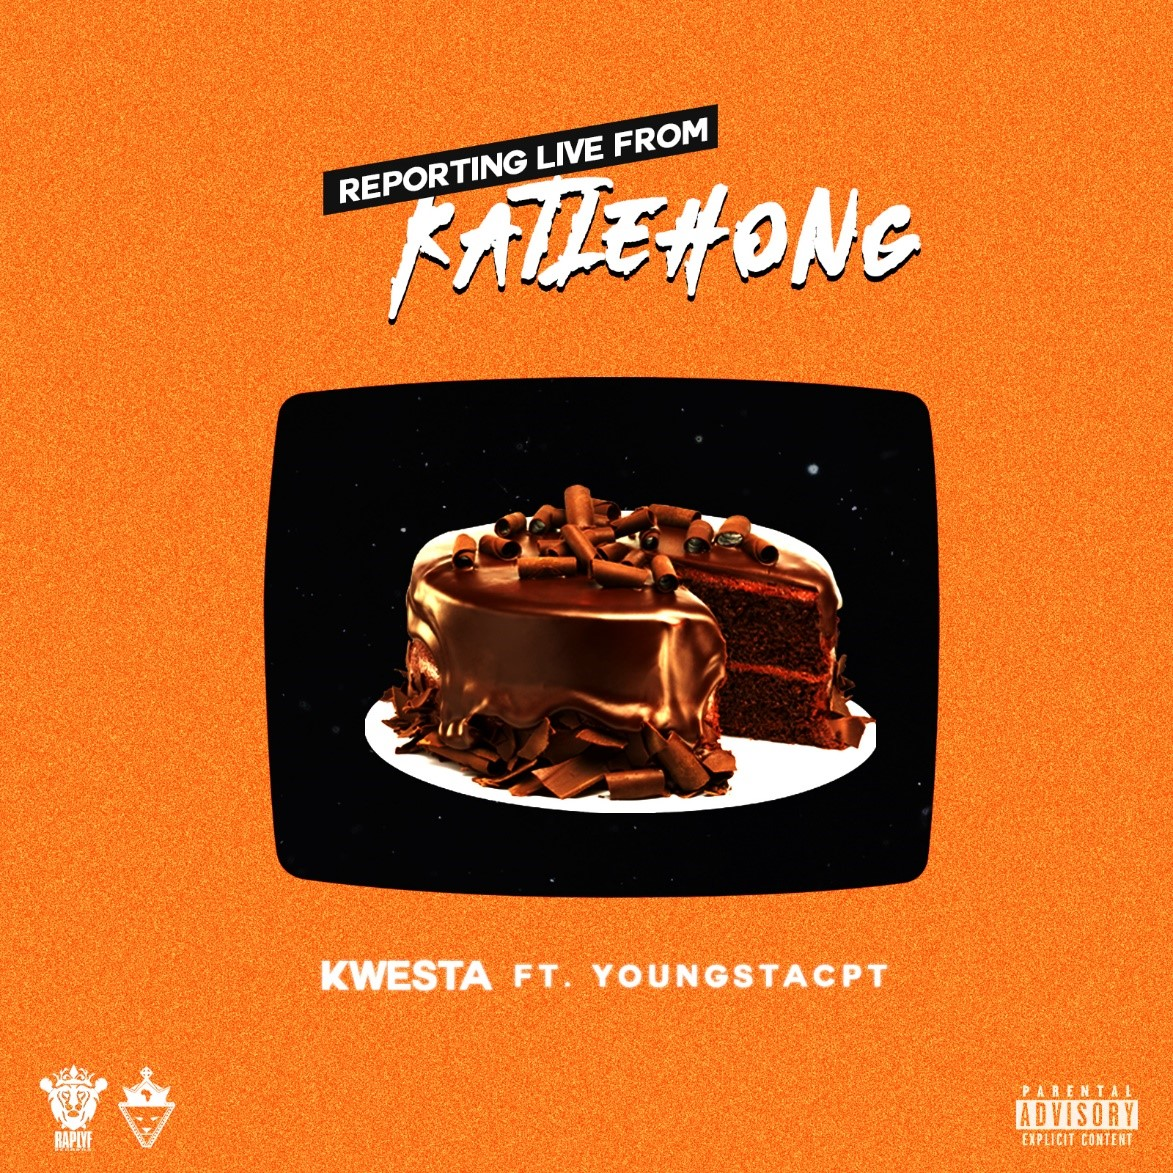 kwesta Kwesta Drops New 'Reporting Live From Katlehong' Song Ft. YoungstaCPT [Listen] k